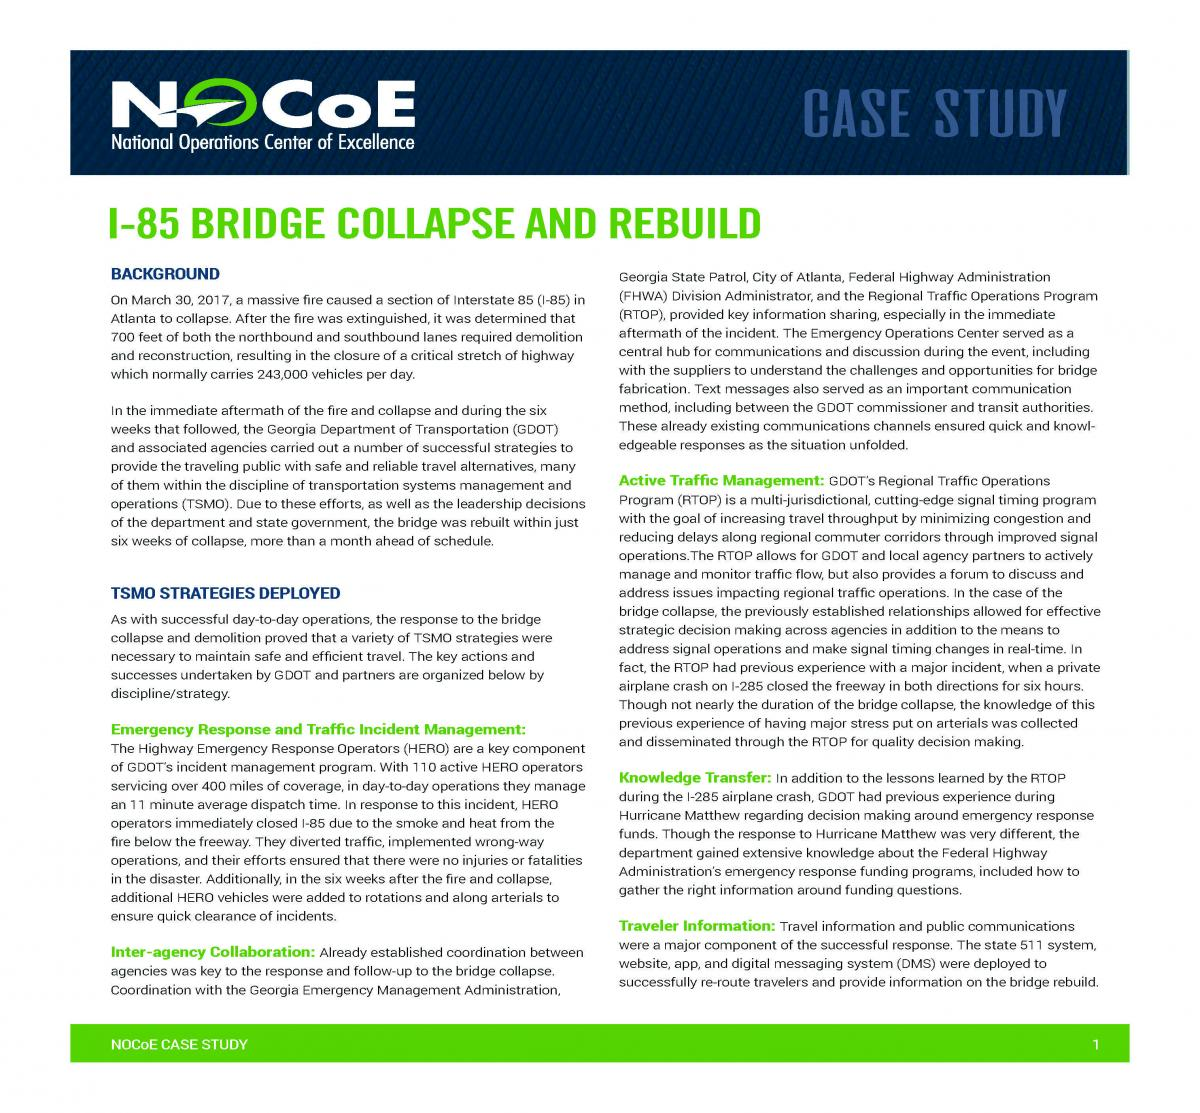 I-85 Bridge Collapse and Rebuild | National Operations